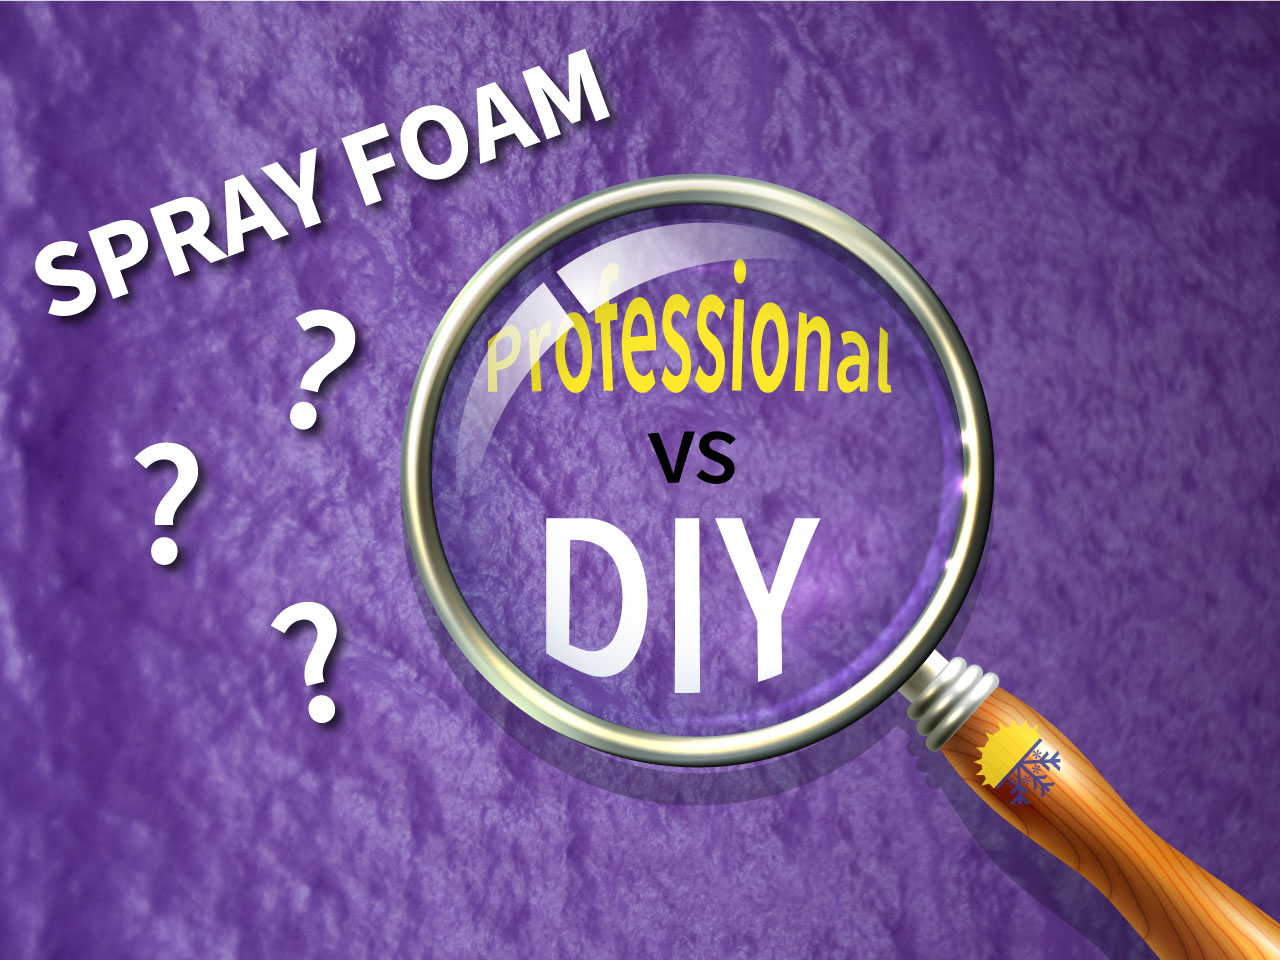 Sprayfoam - Professional vs. DIY